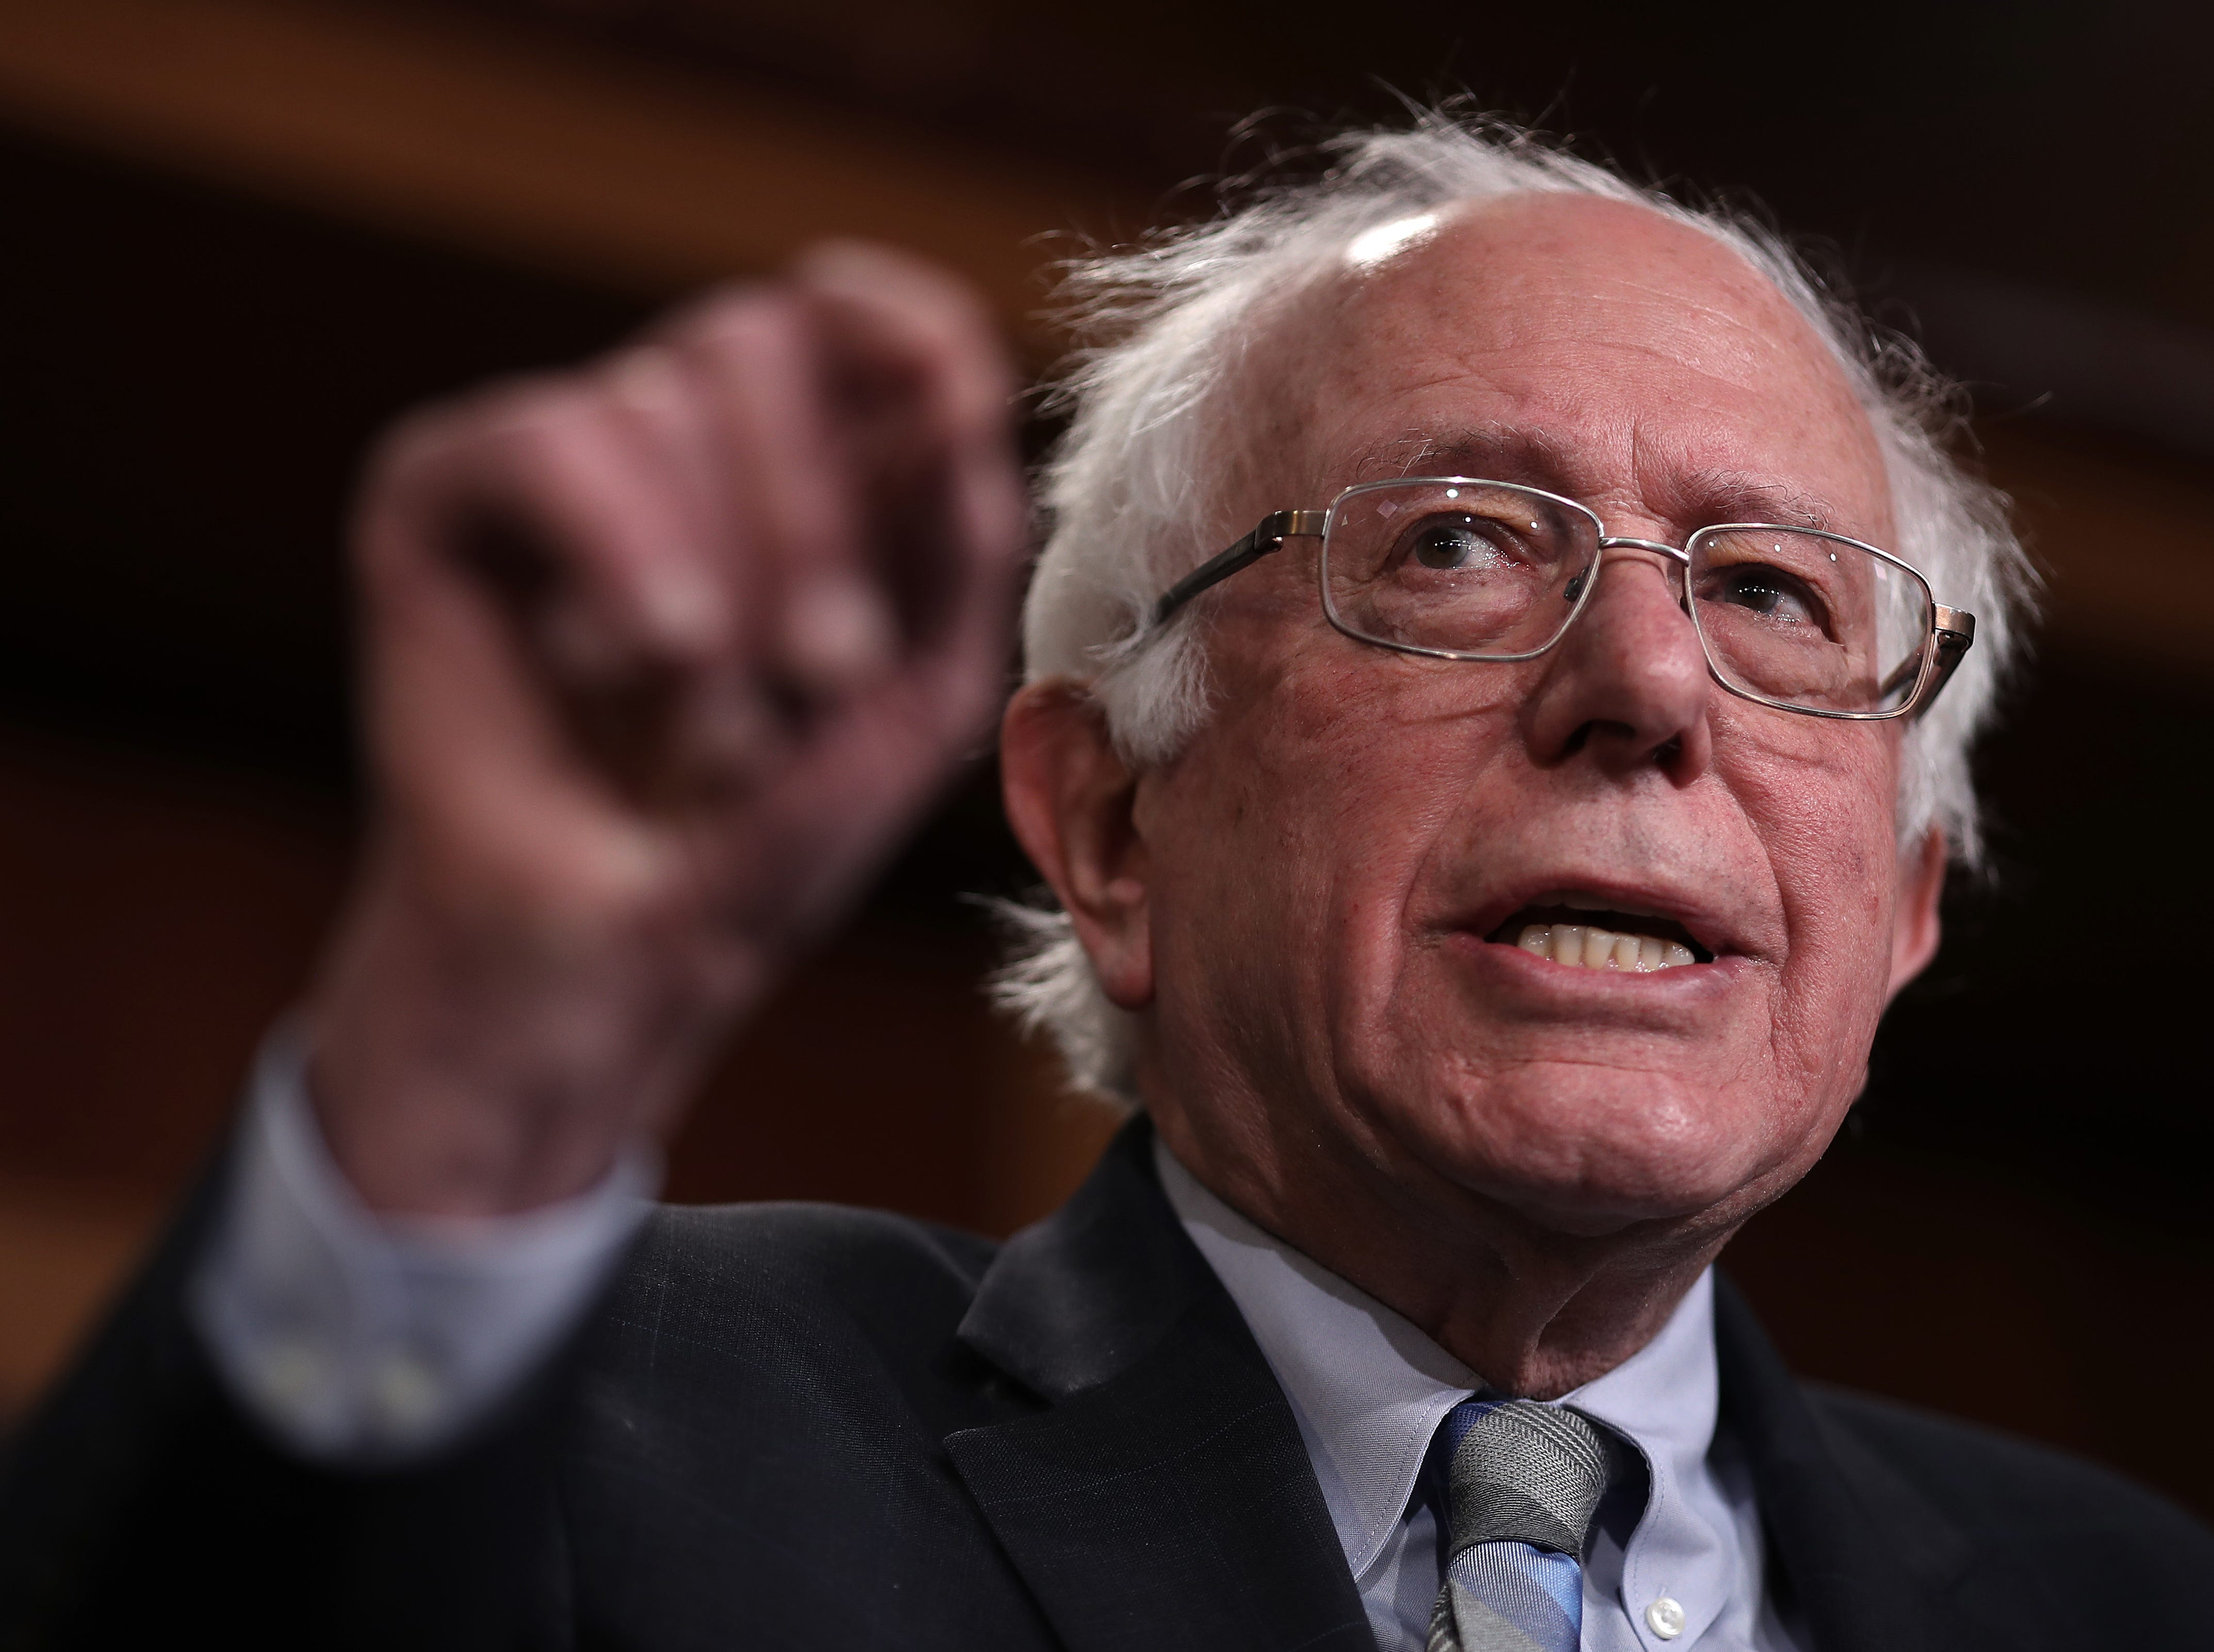 Senator Bernie Sanders, I-VT, announced he was running for president on Feb. 19, 2019.